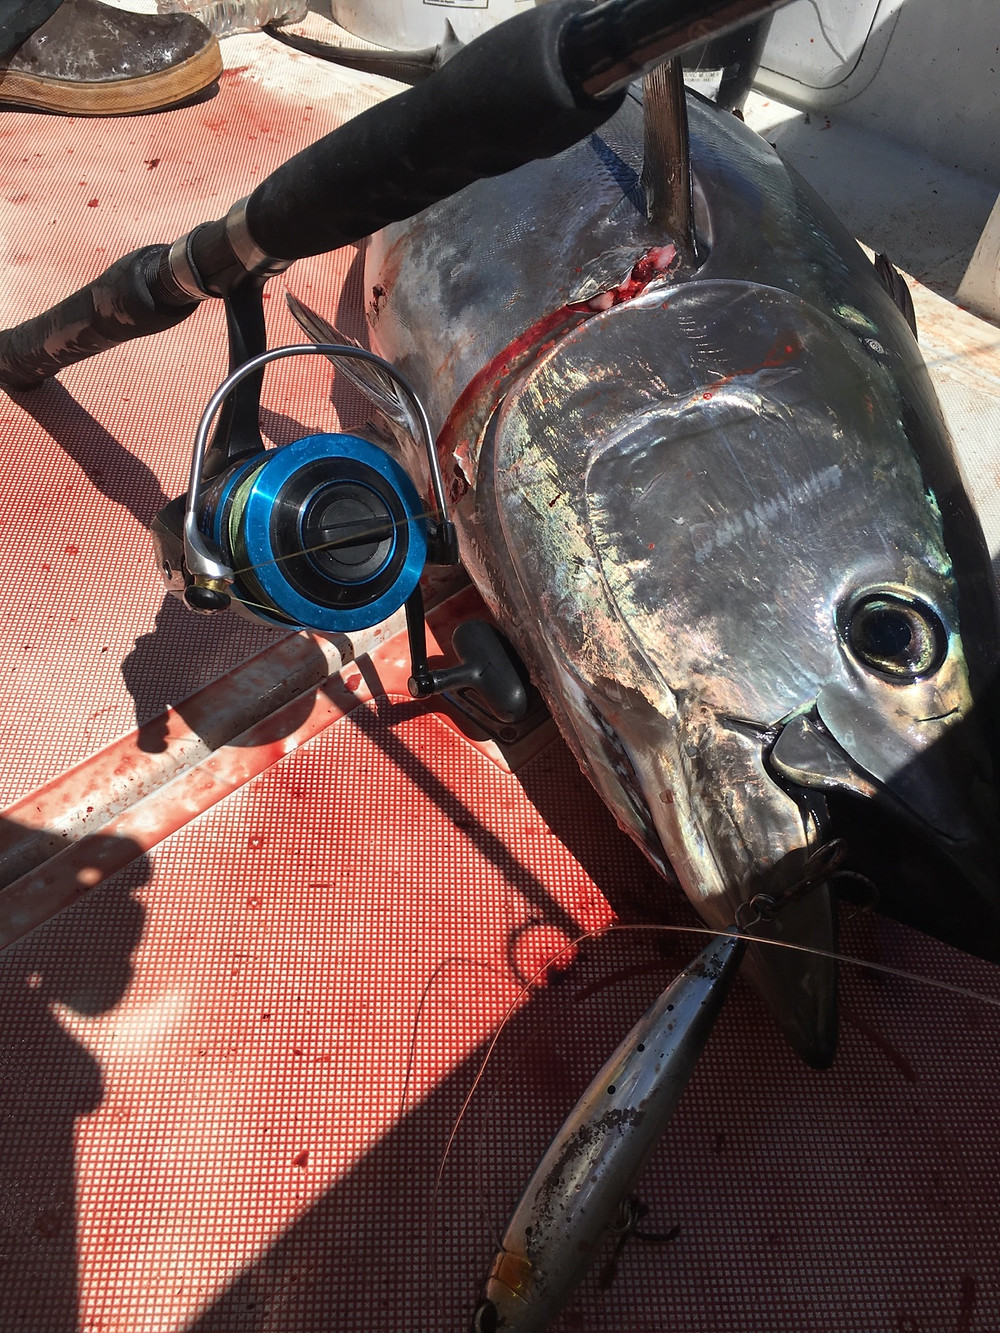 Adi's bluefin tuna caught with a Shimano spinning reel!